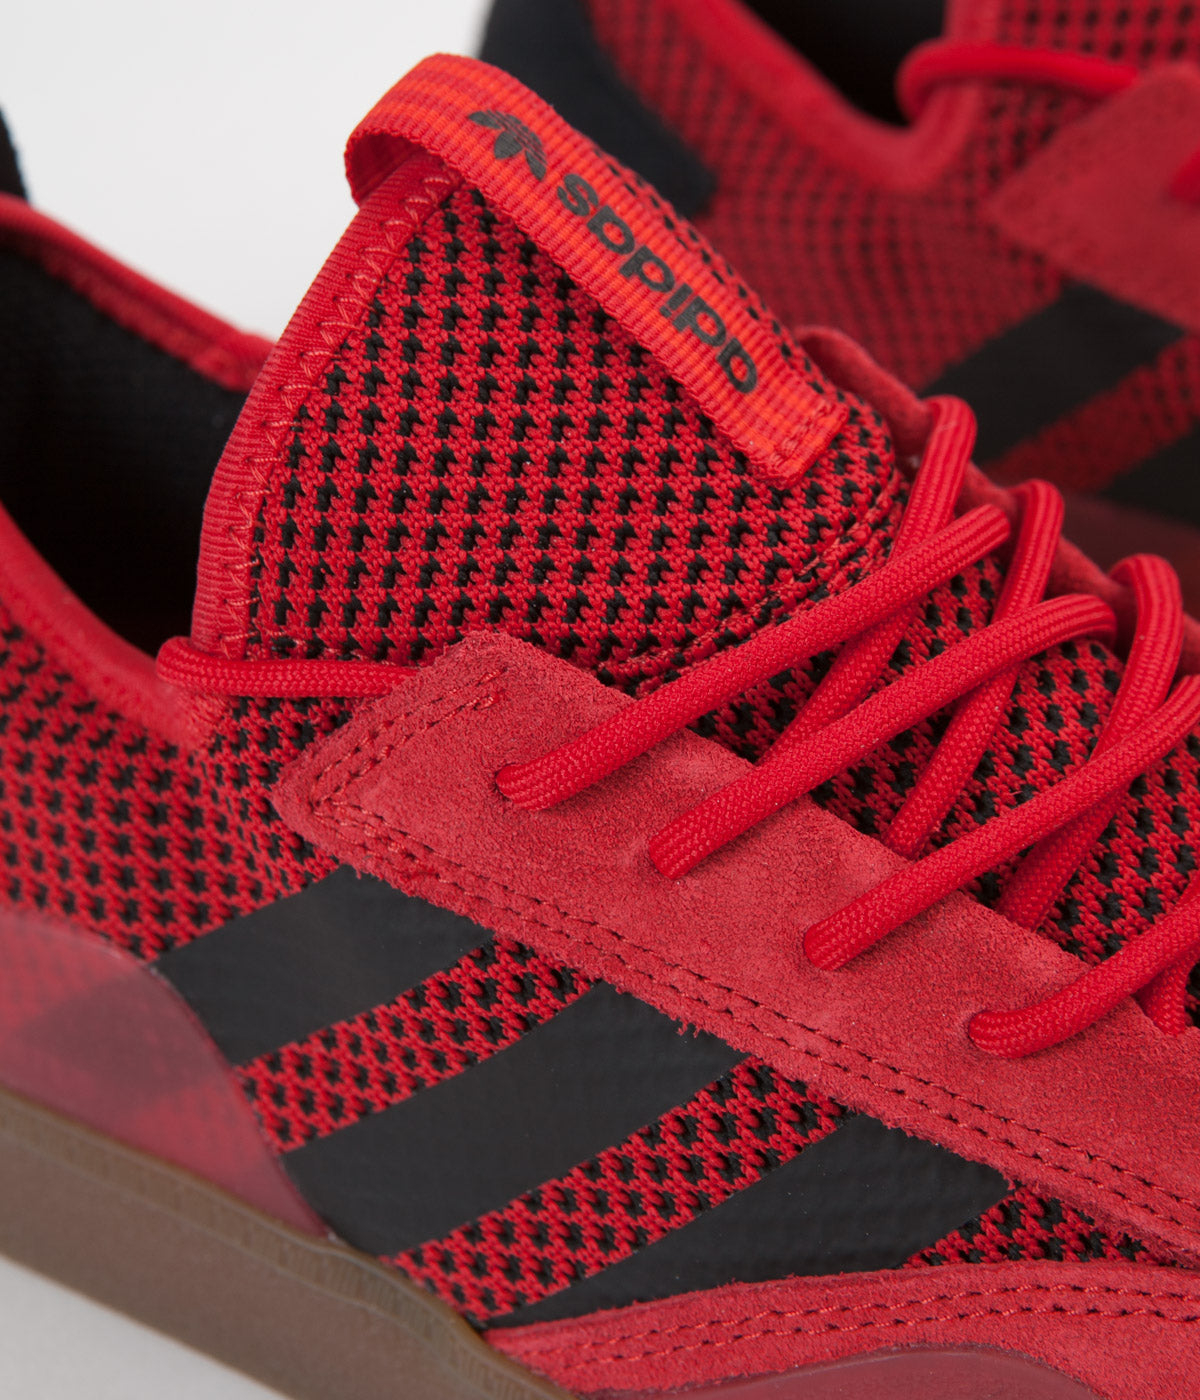 cheap for discount f2466 d6dbc ... Adidas 3ST.001 Shoes - Scarlet  Core Black  Gum4 ...